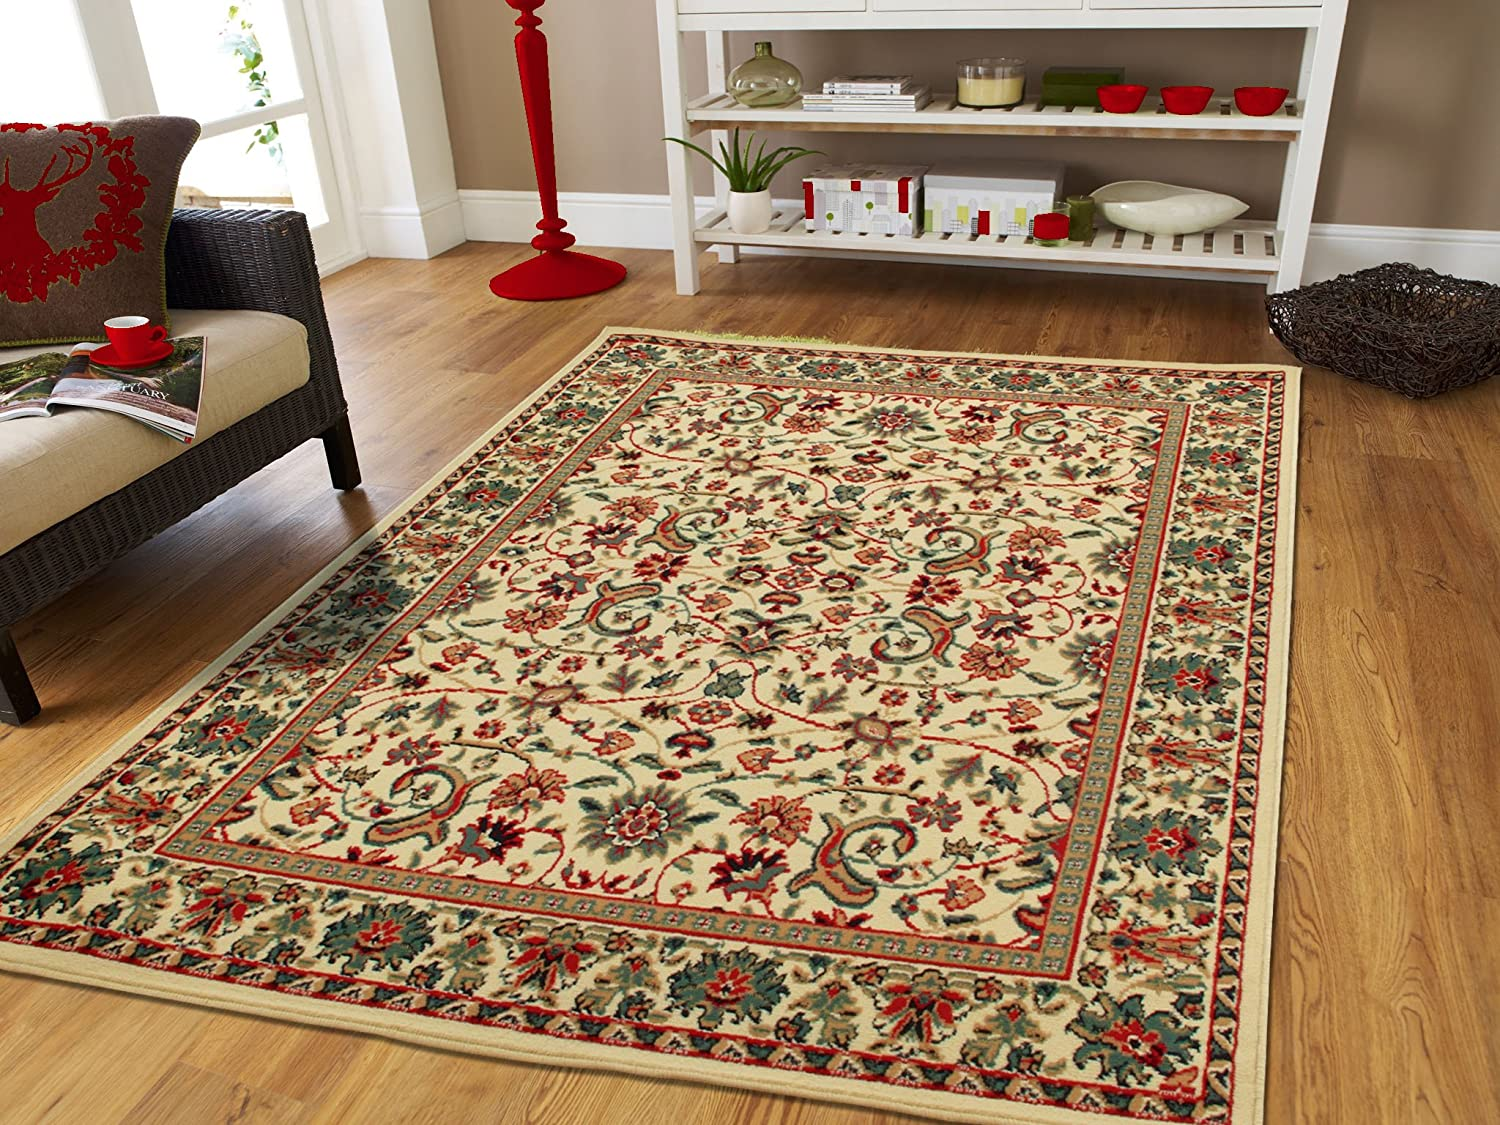 Amazon.com: Large Area Rug Oriental Carpet 8x11 Living Room Rugs 8x10 Green Rugs  Area Rugs Clearance (Large 8u0027x11u0027, Green): Kitchen U0026 Dining